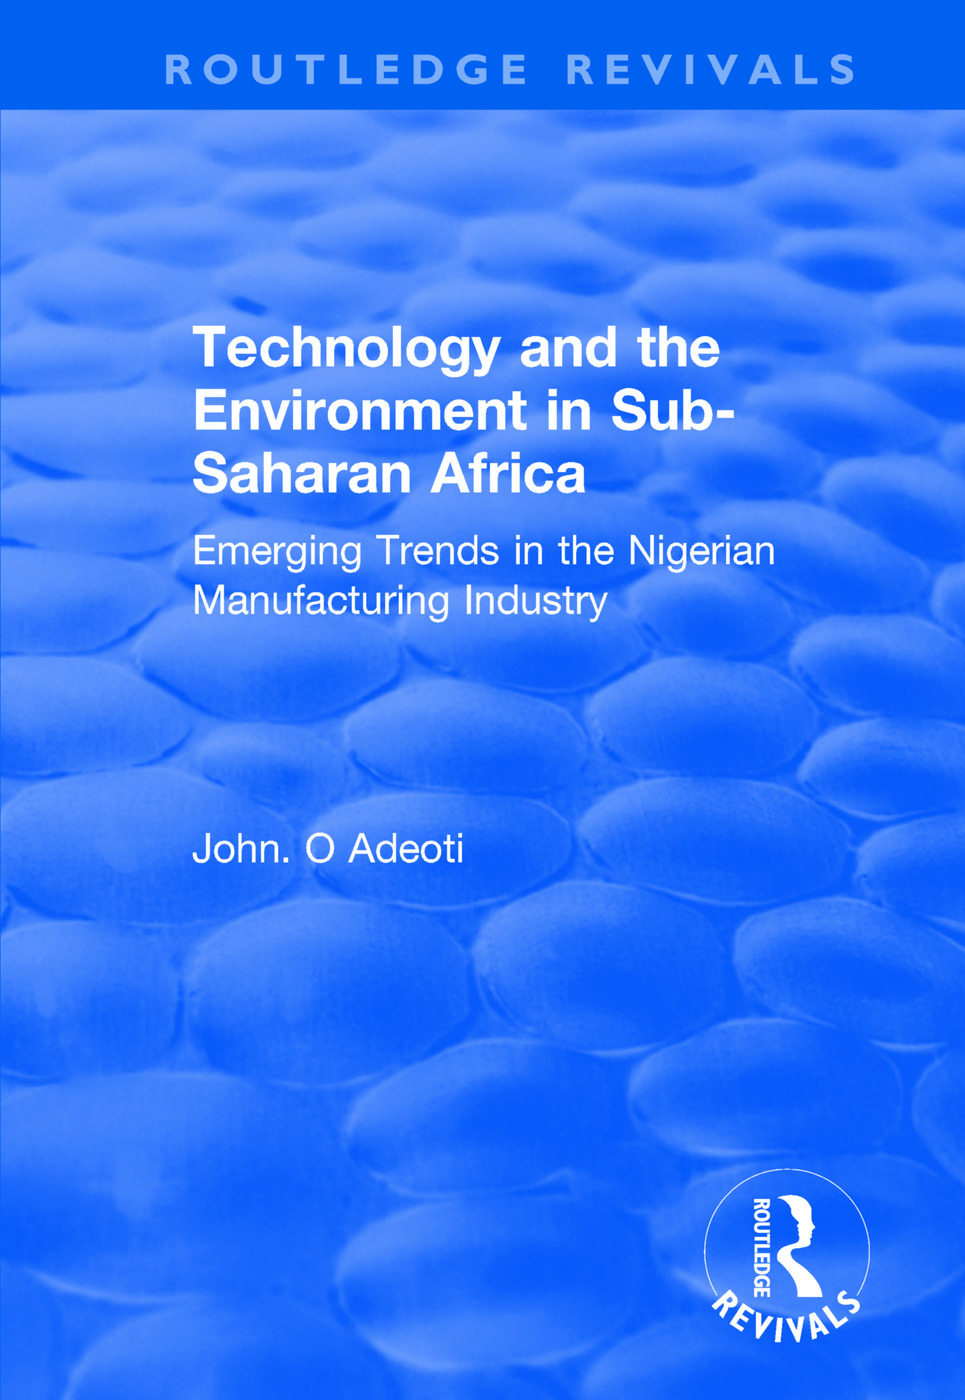 Technology and the Environment in Sub-Saharan Africa: Emerging Trends in the Nigerian Manufacturing Industry